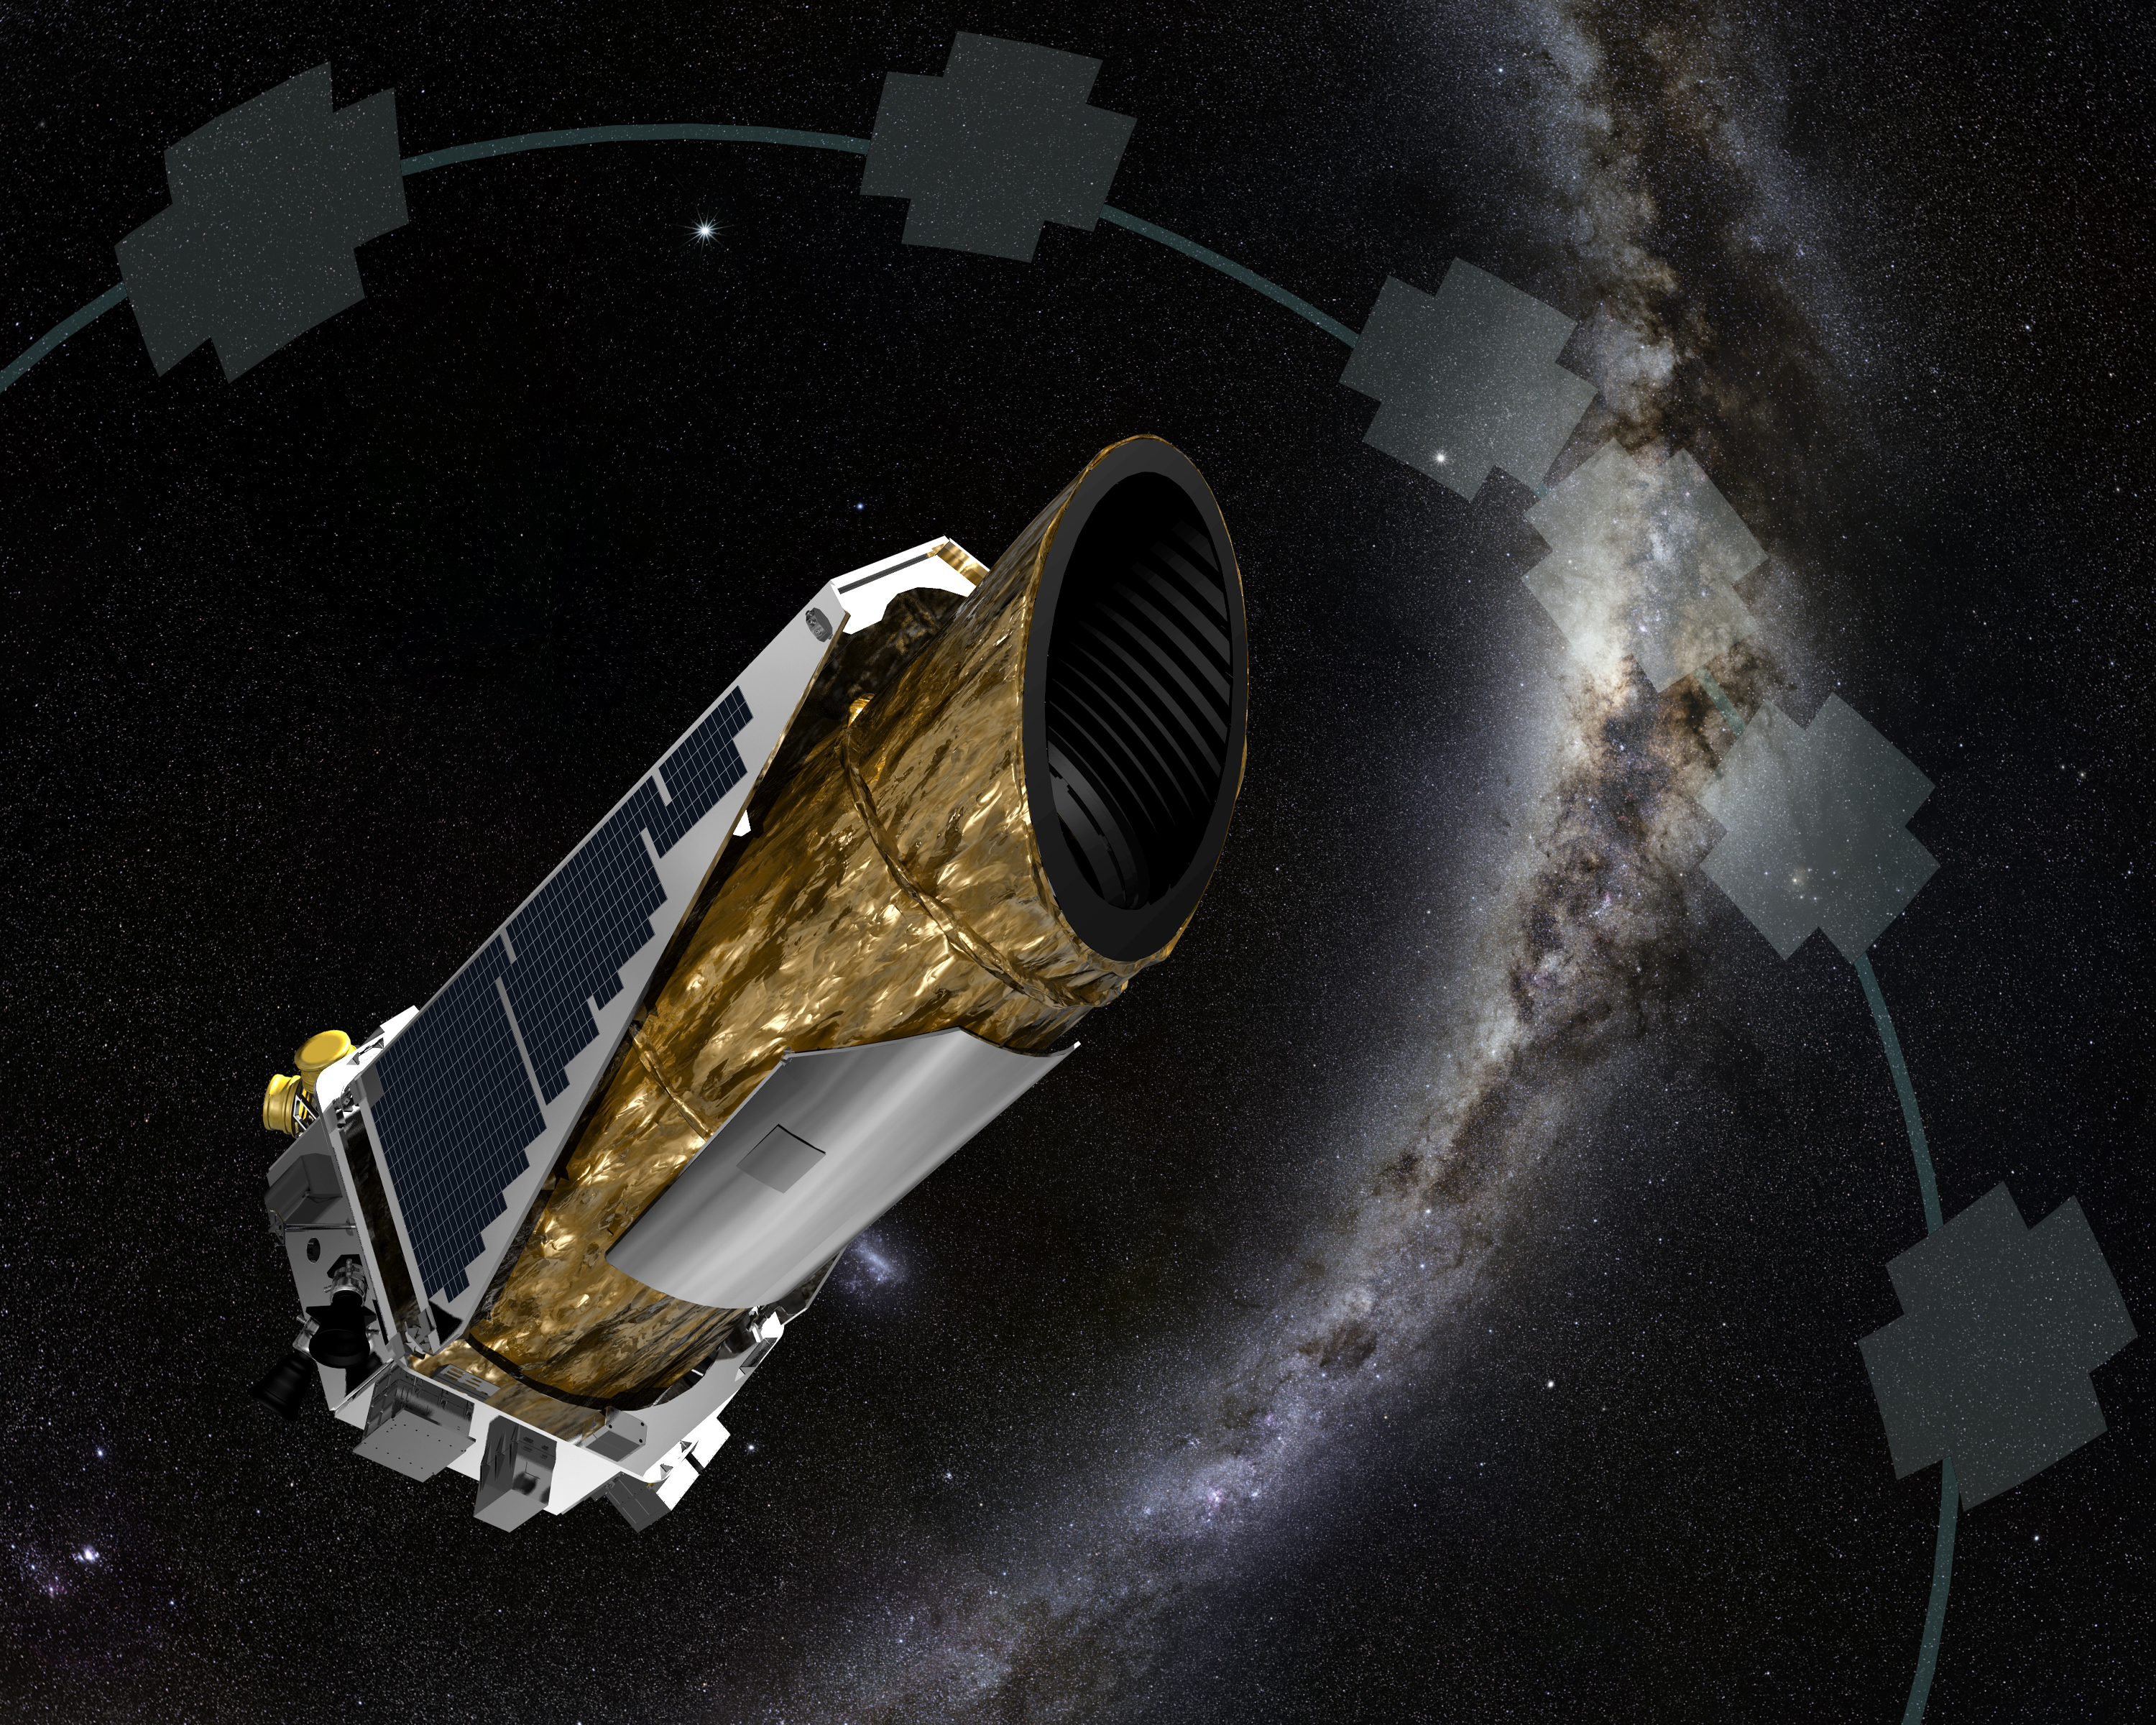 Nasa to host news conference on discovery beyond our solar system nasa